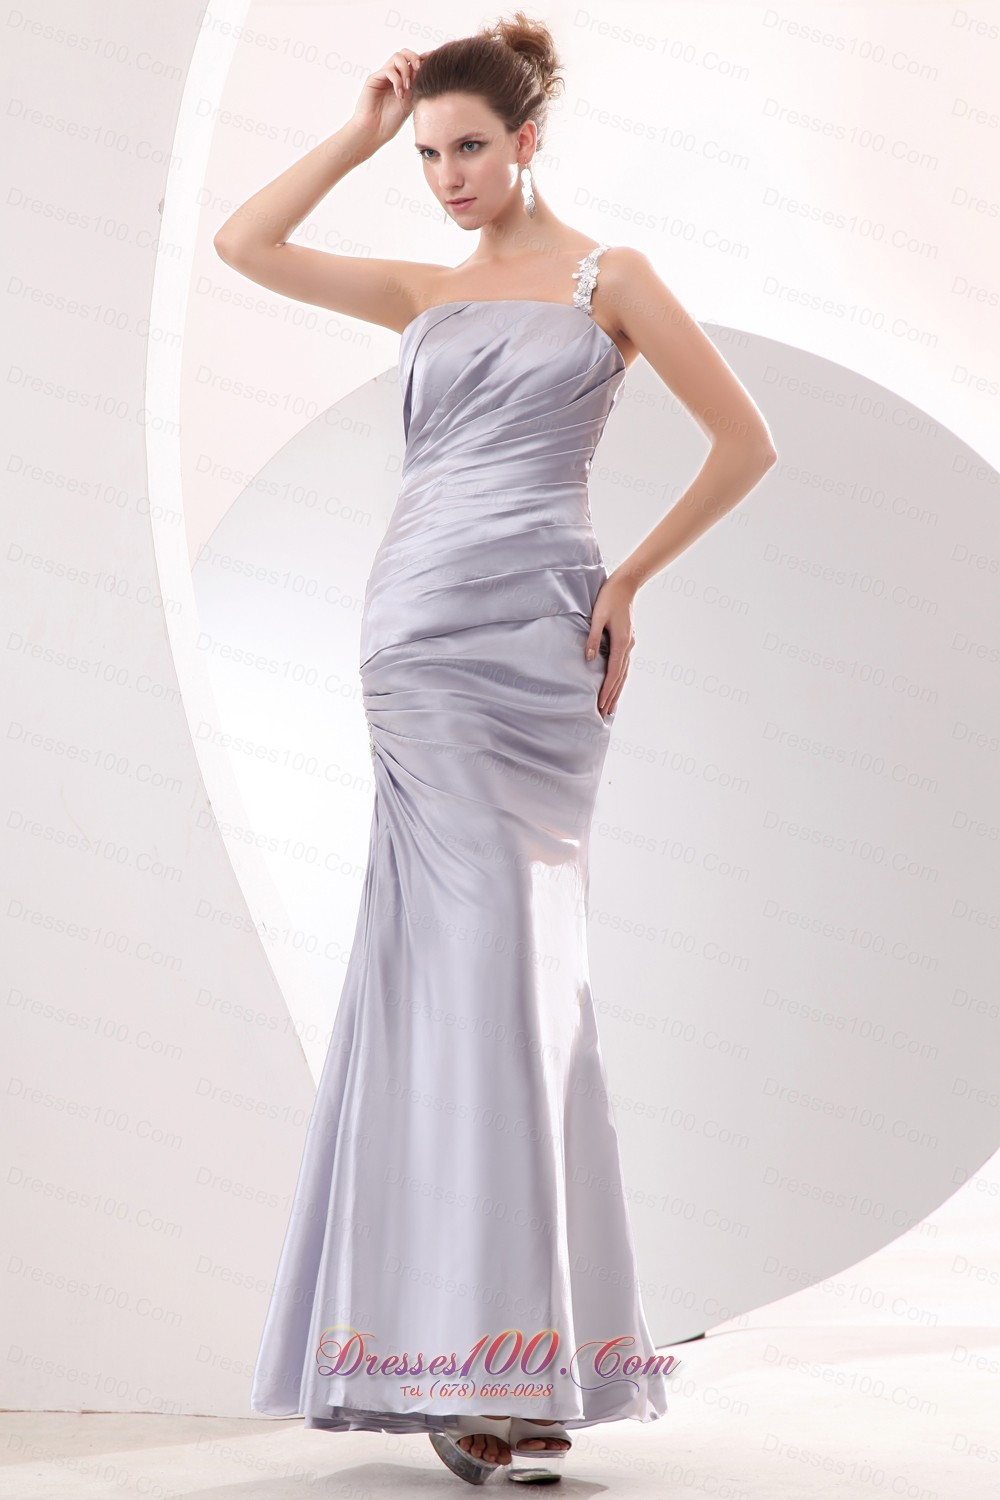 Silver Column Prom Evening Discounted Dress